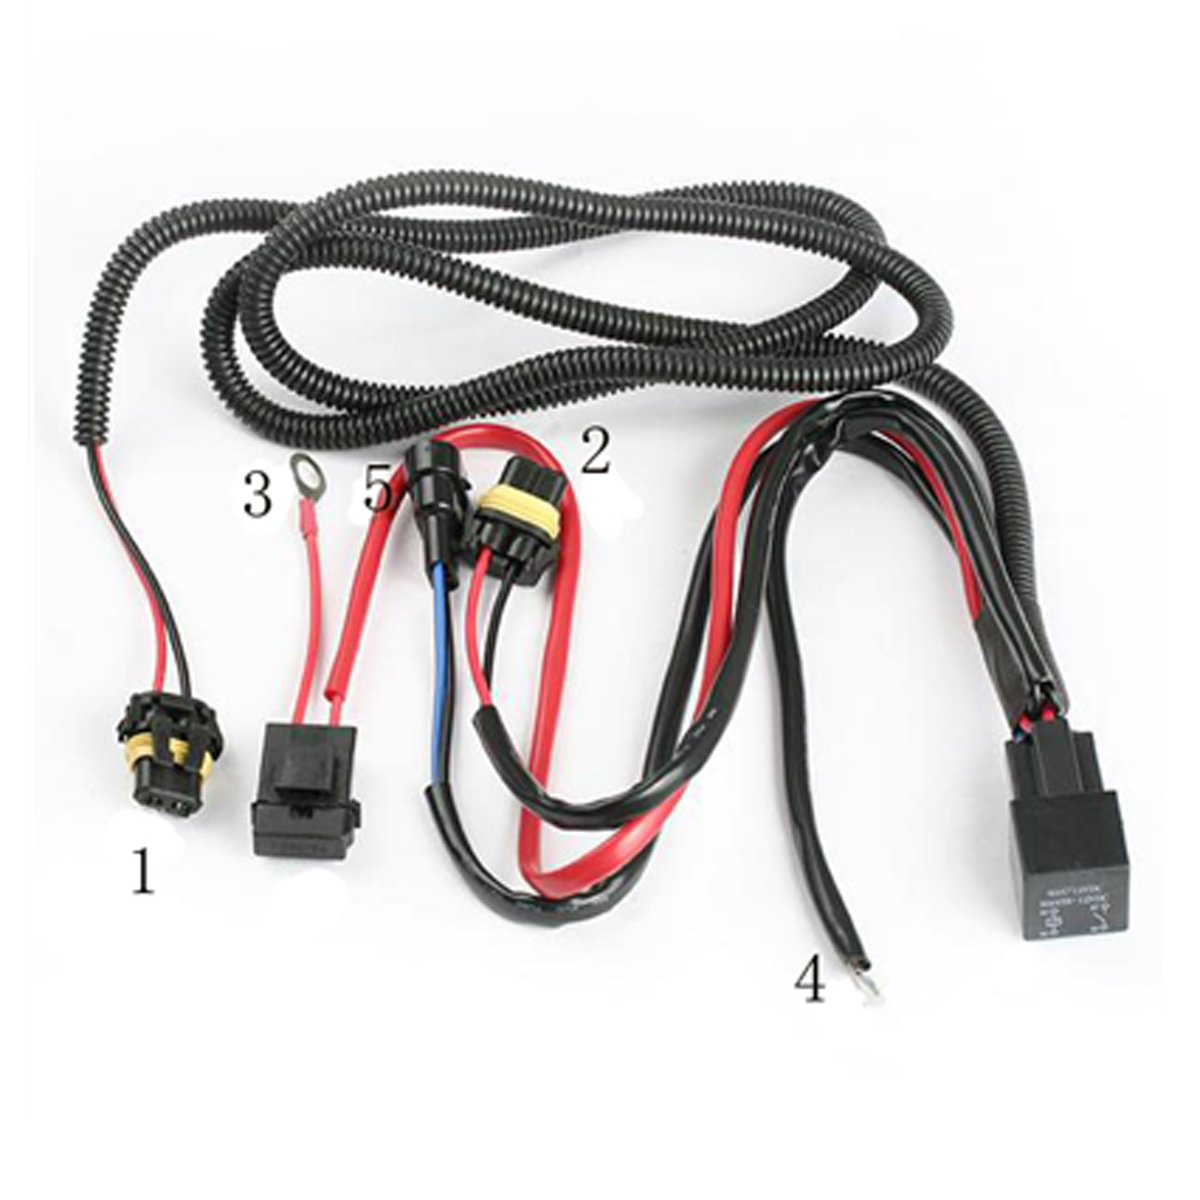 61lwCIuIleL._SL1200_ amazon com innovited universal relay wiring harness for all hid Electrical Harness Connectors at reclaimingppi.co